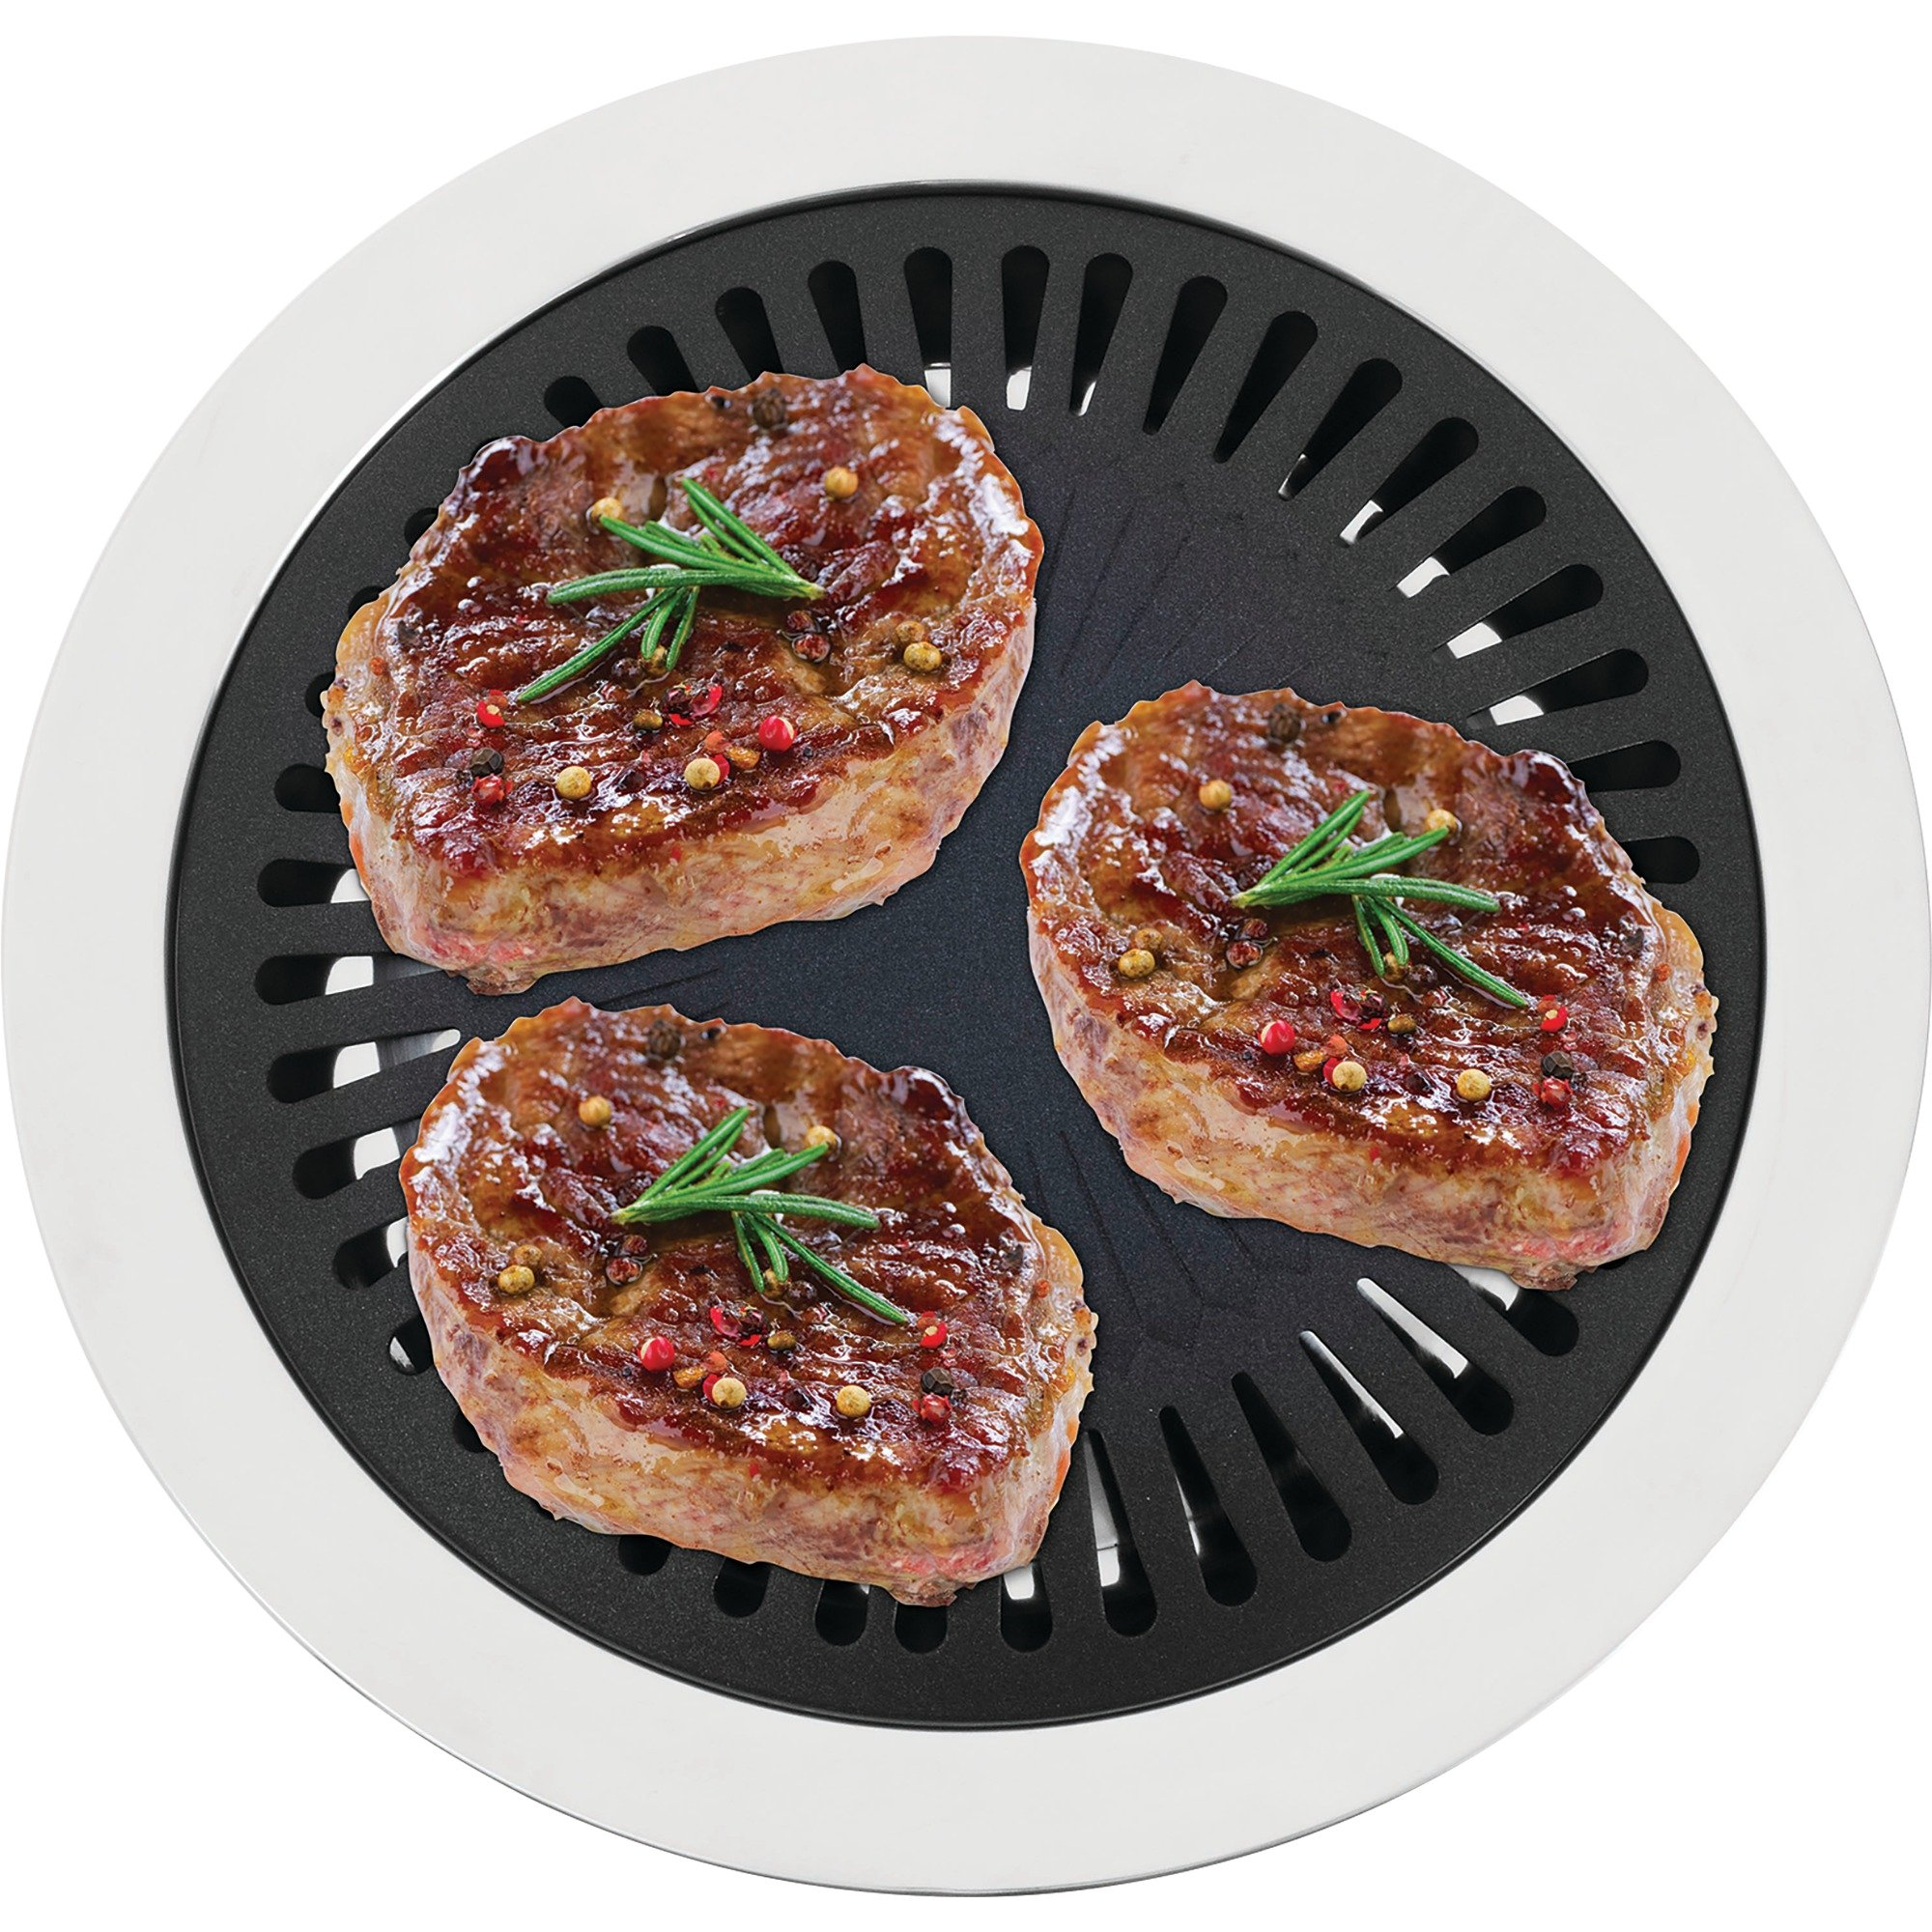 Chef's Secret 2 Piece Non-Stick Aluminum Indoor Stovetop Grill with Stainless Steel Base by Chef's Secret